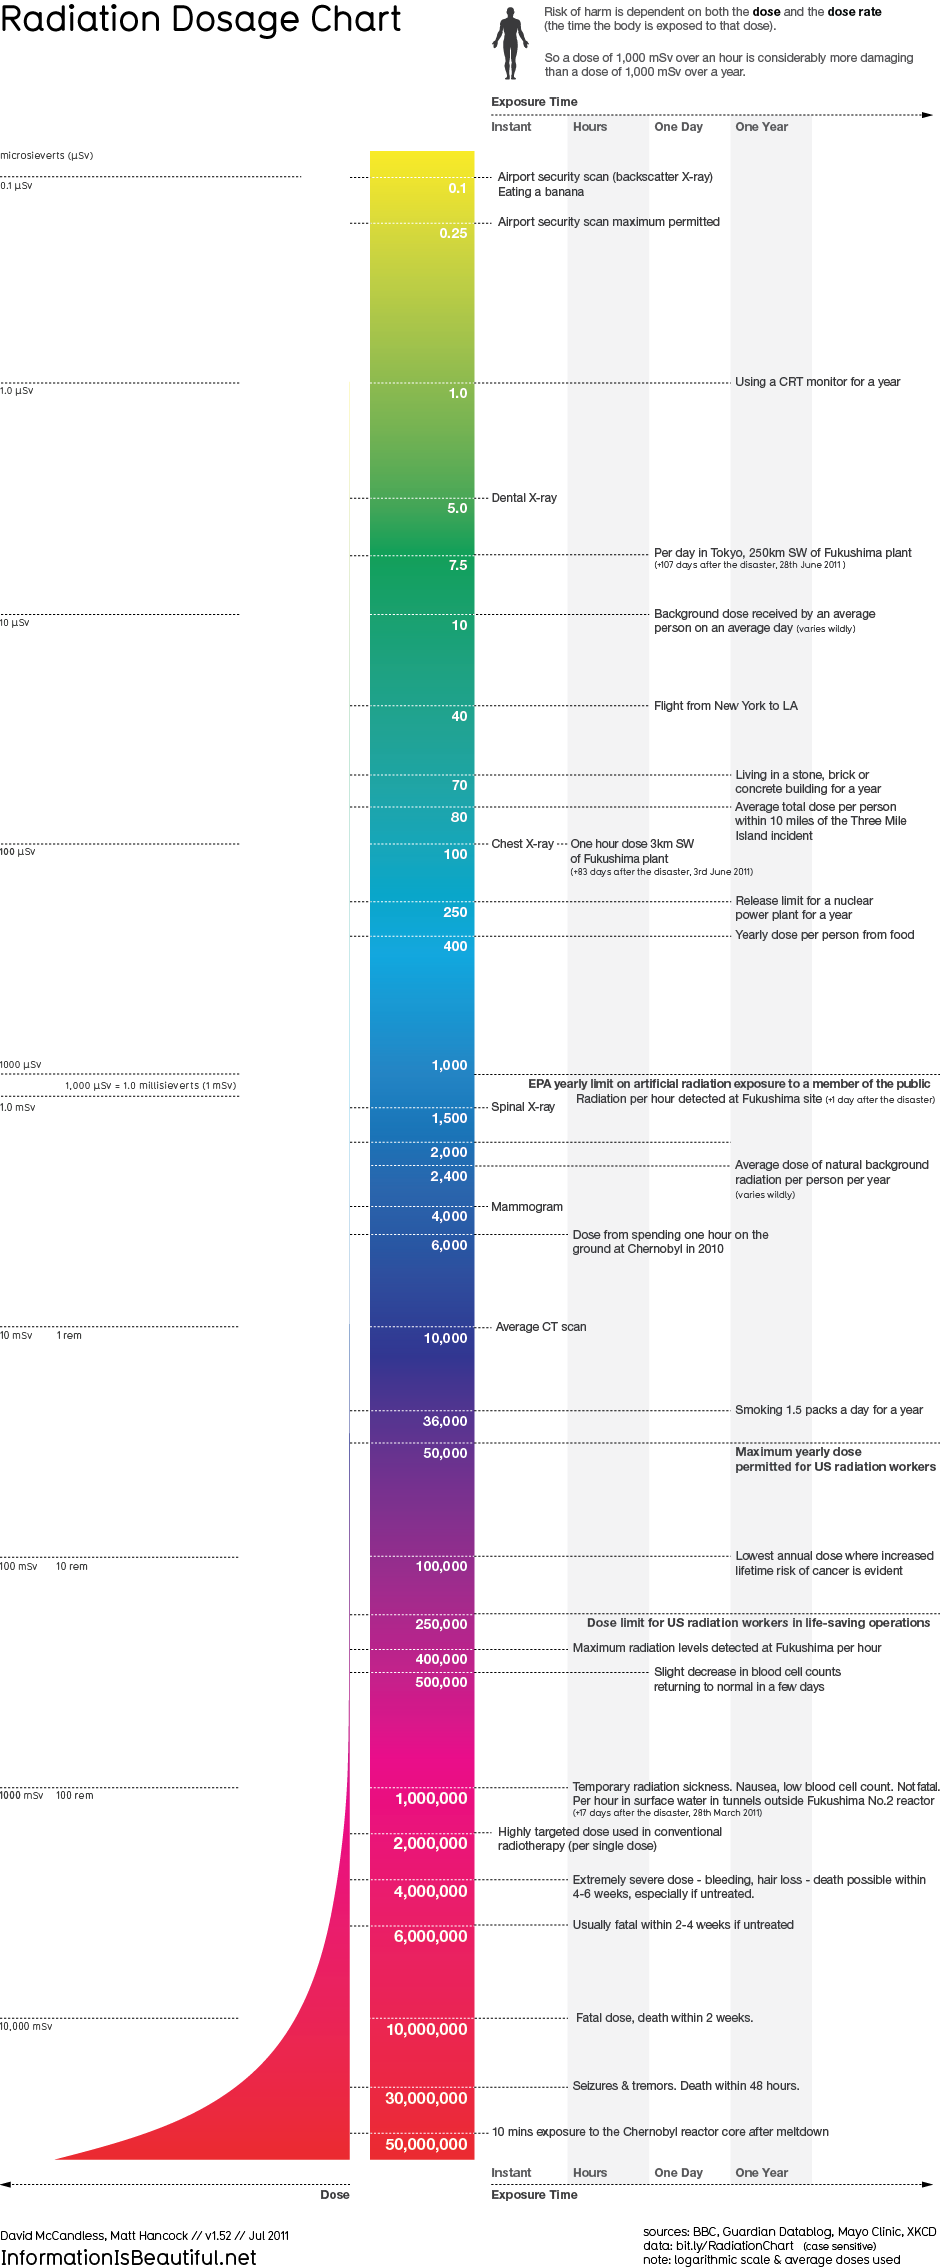 Amazing radiation dosage chart infographic from eating a banana to